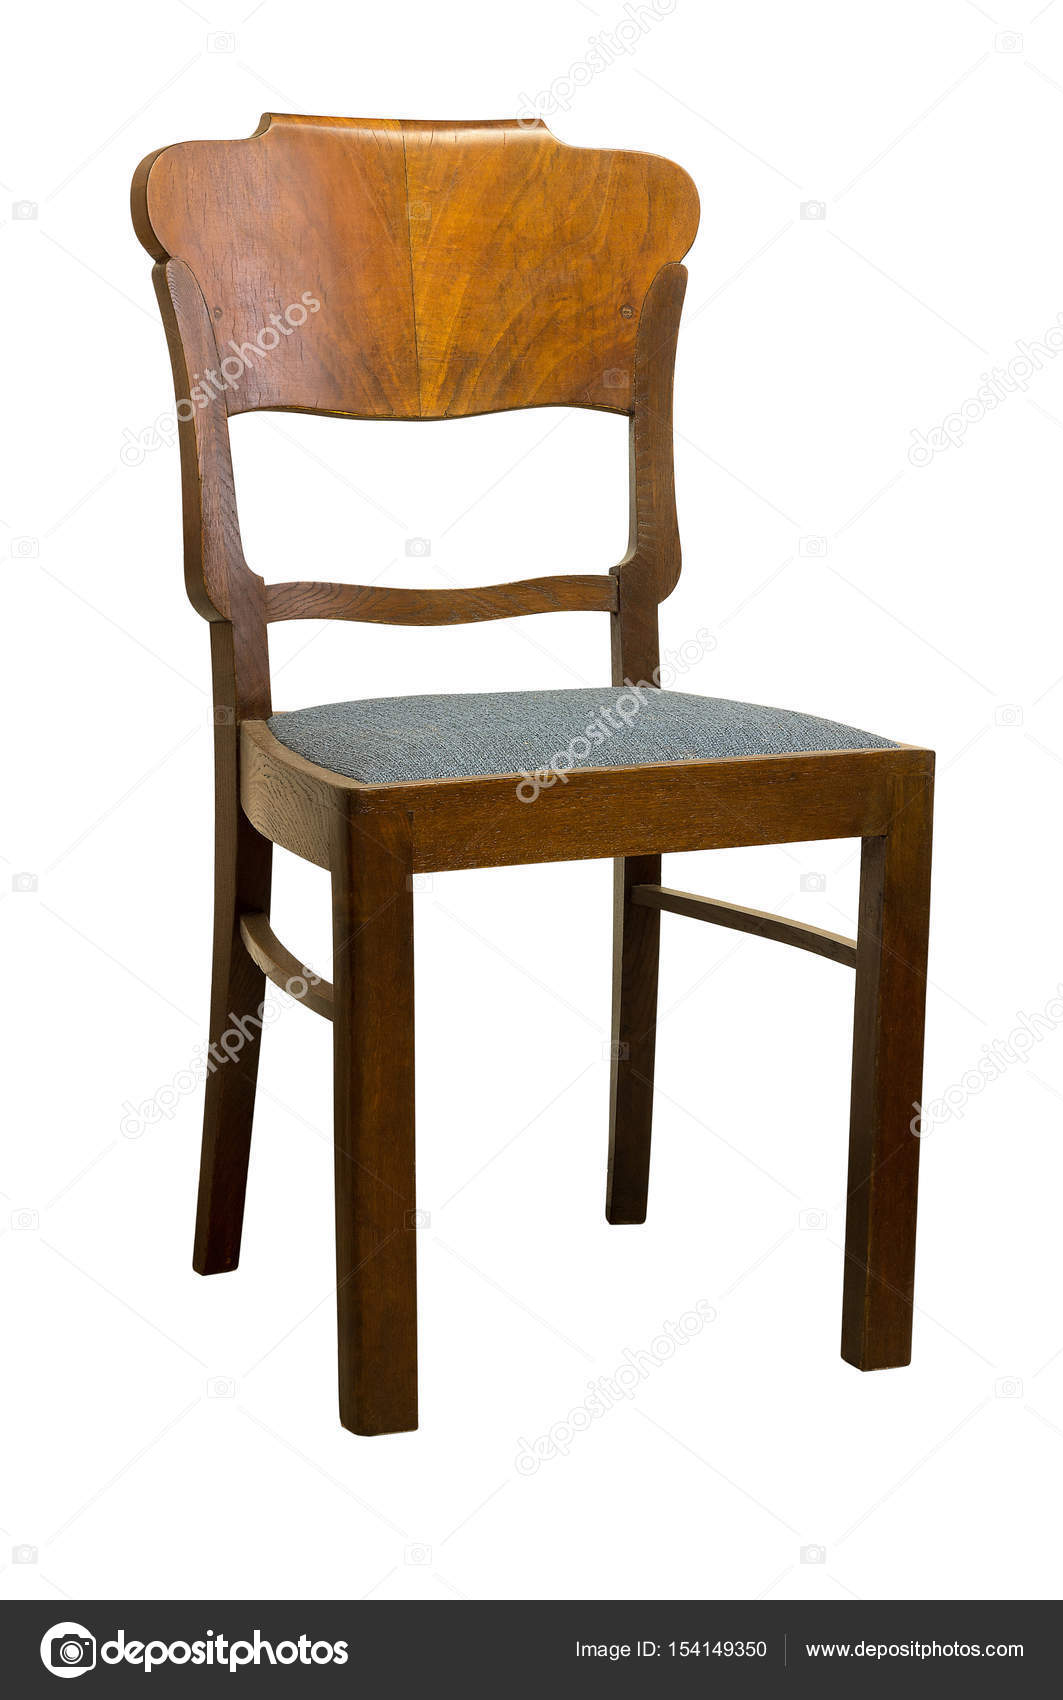 vintage art deco furniture. Vintage Art Deco Chair Isolated On White Background \u2014 Stock Photo Furniture L